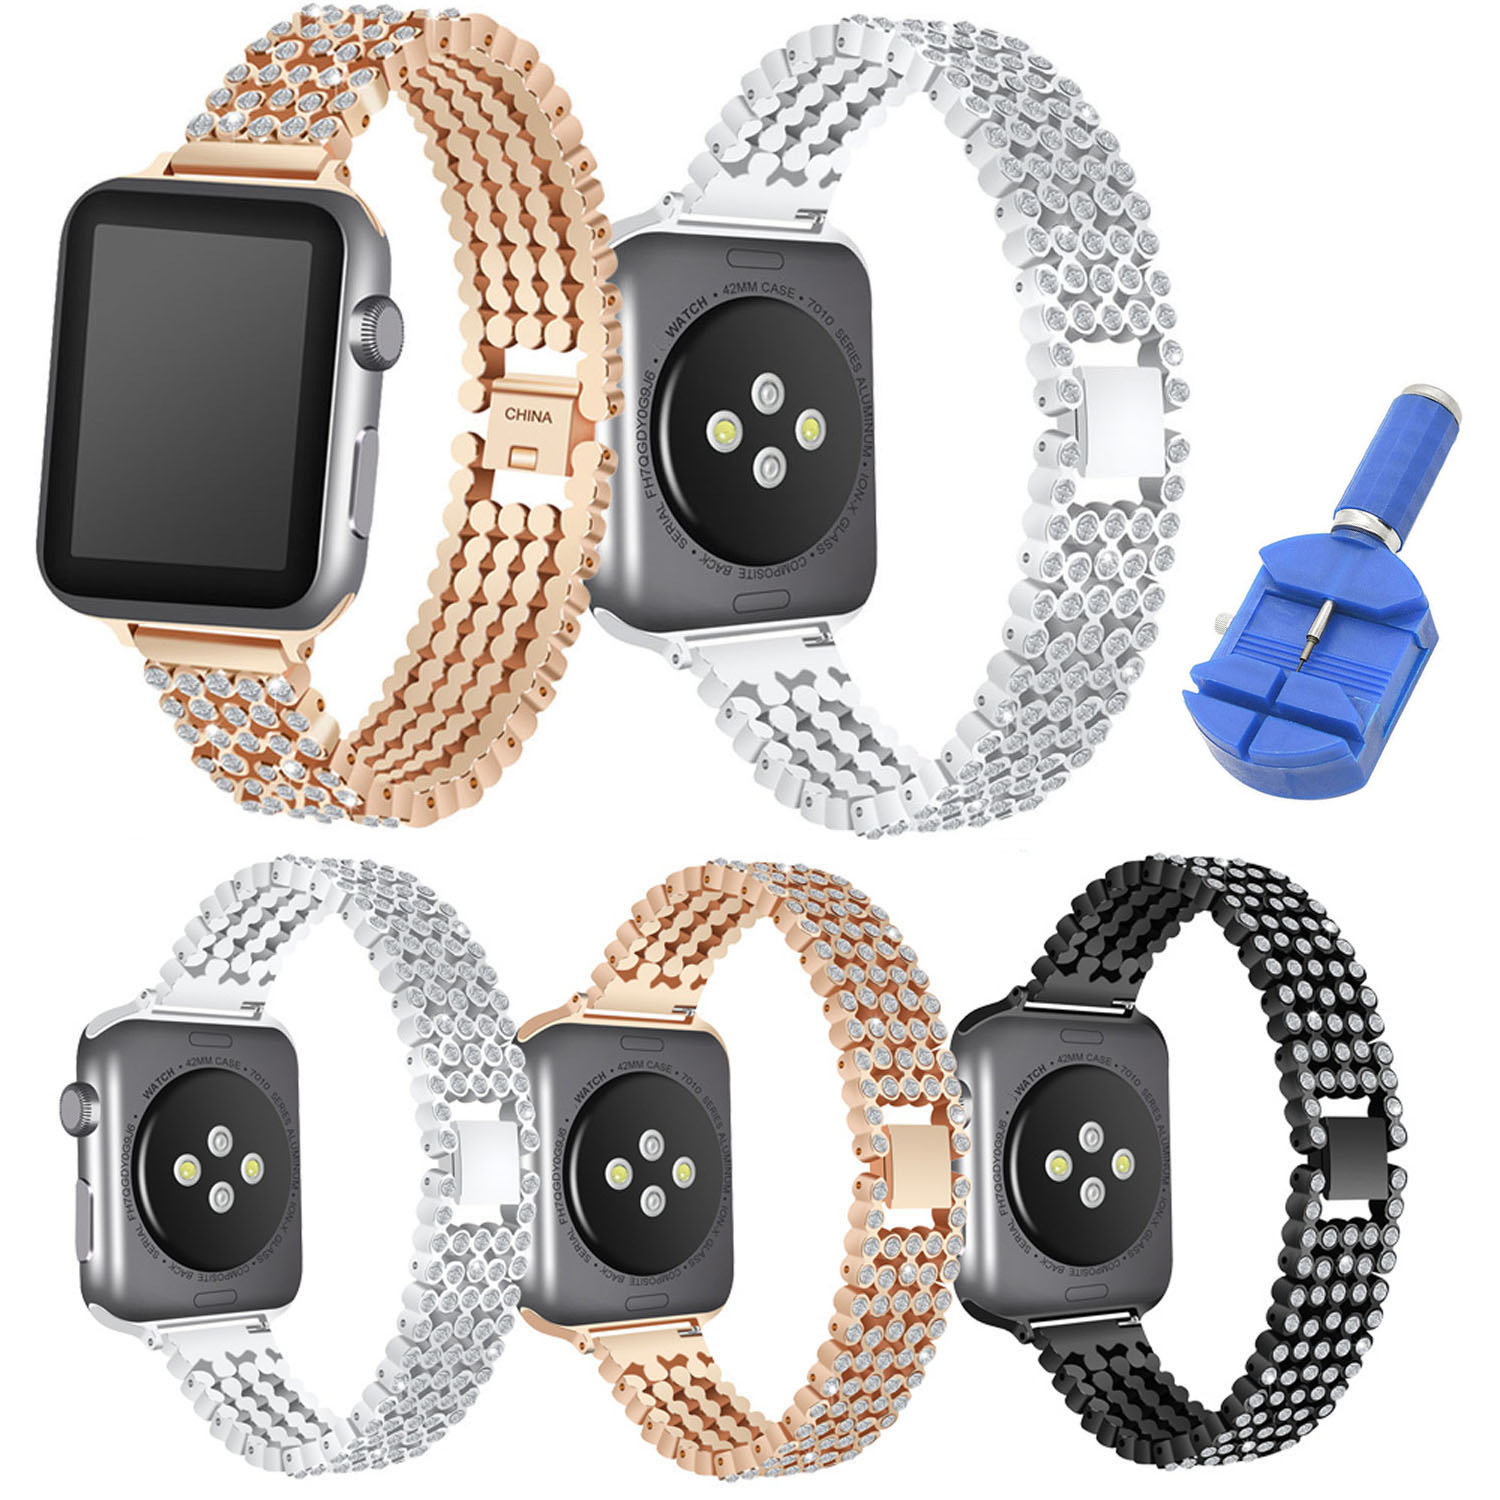 Luxury Rhinestone Strap Band For Apple Watch Series 5 4 3 2 1 42mm 38mm Wrist Bracelet For Iwatch 40 44mm Apple Watch Band Belt Watchbands Aliexpress